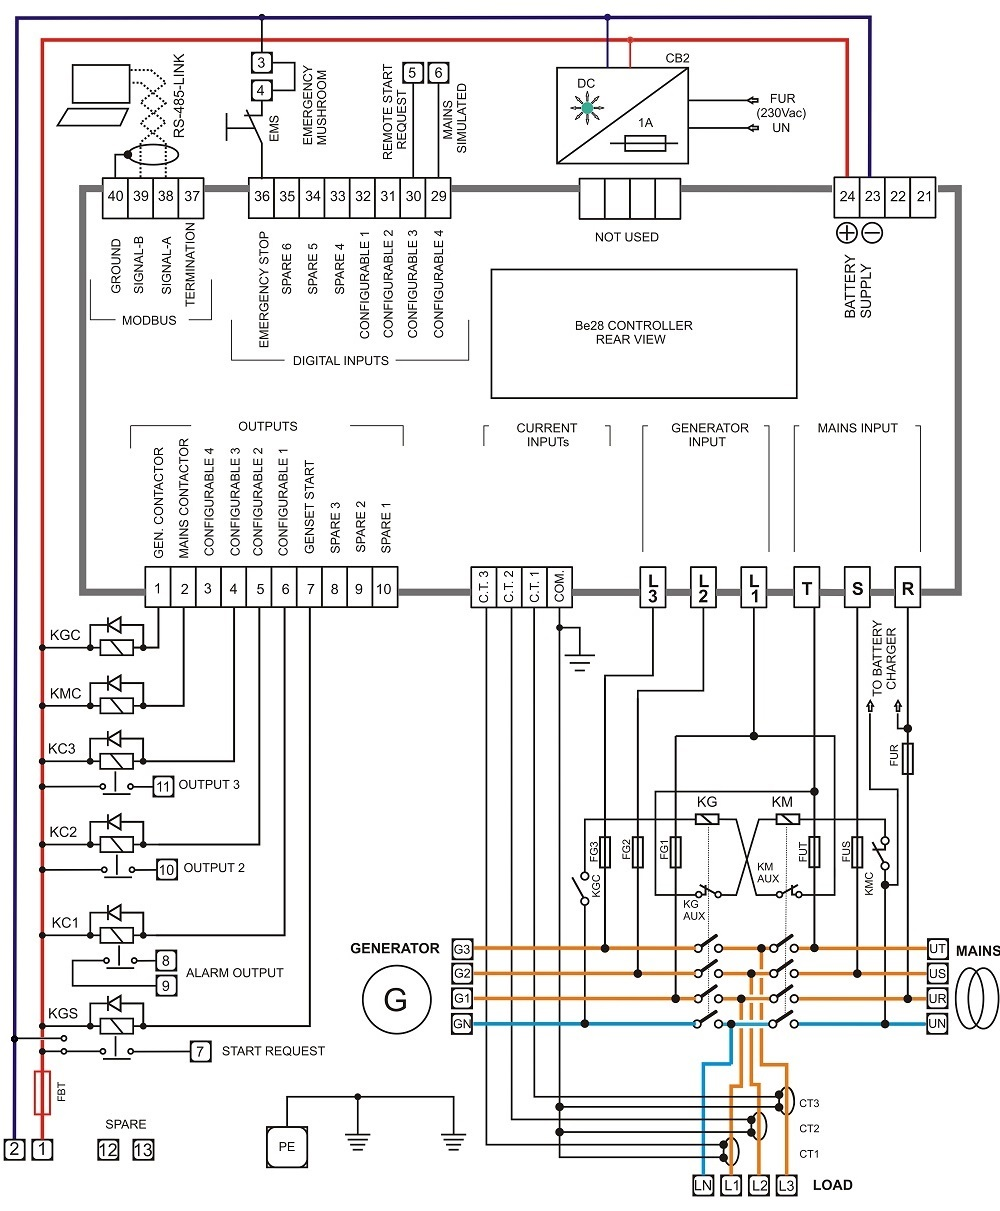 citroen c3 electrical wiring diagram